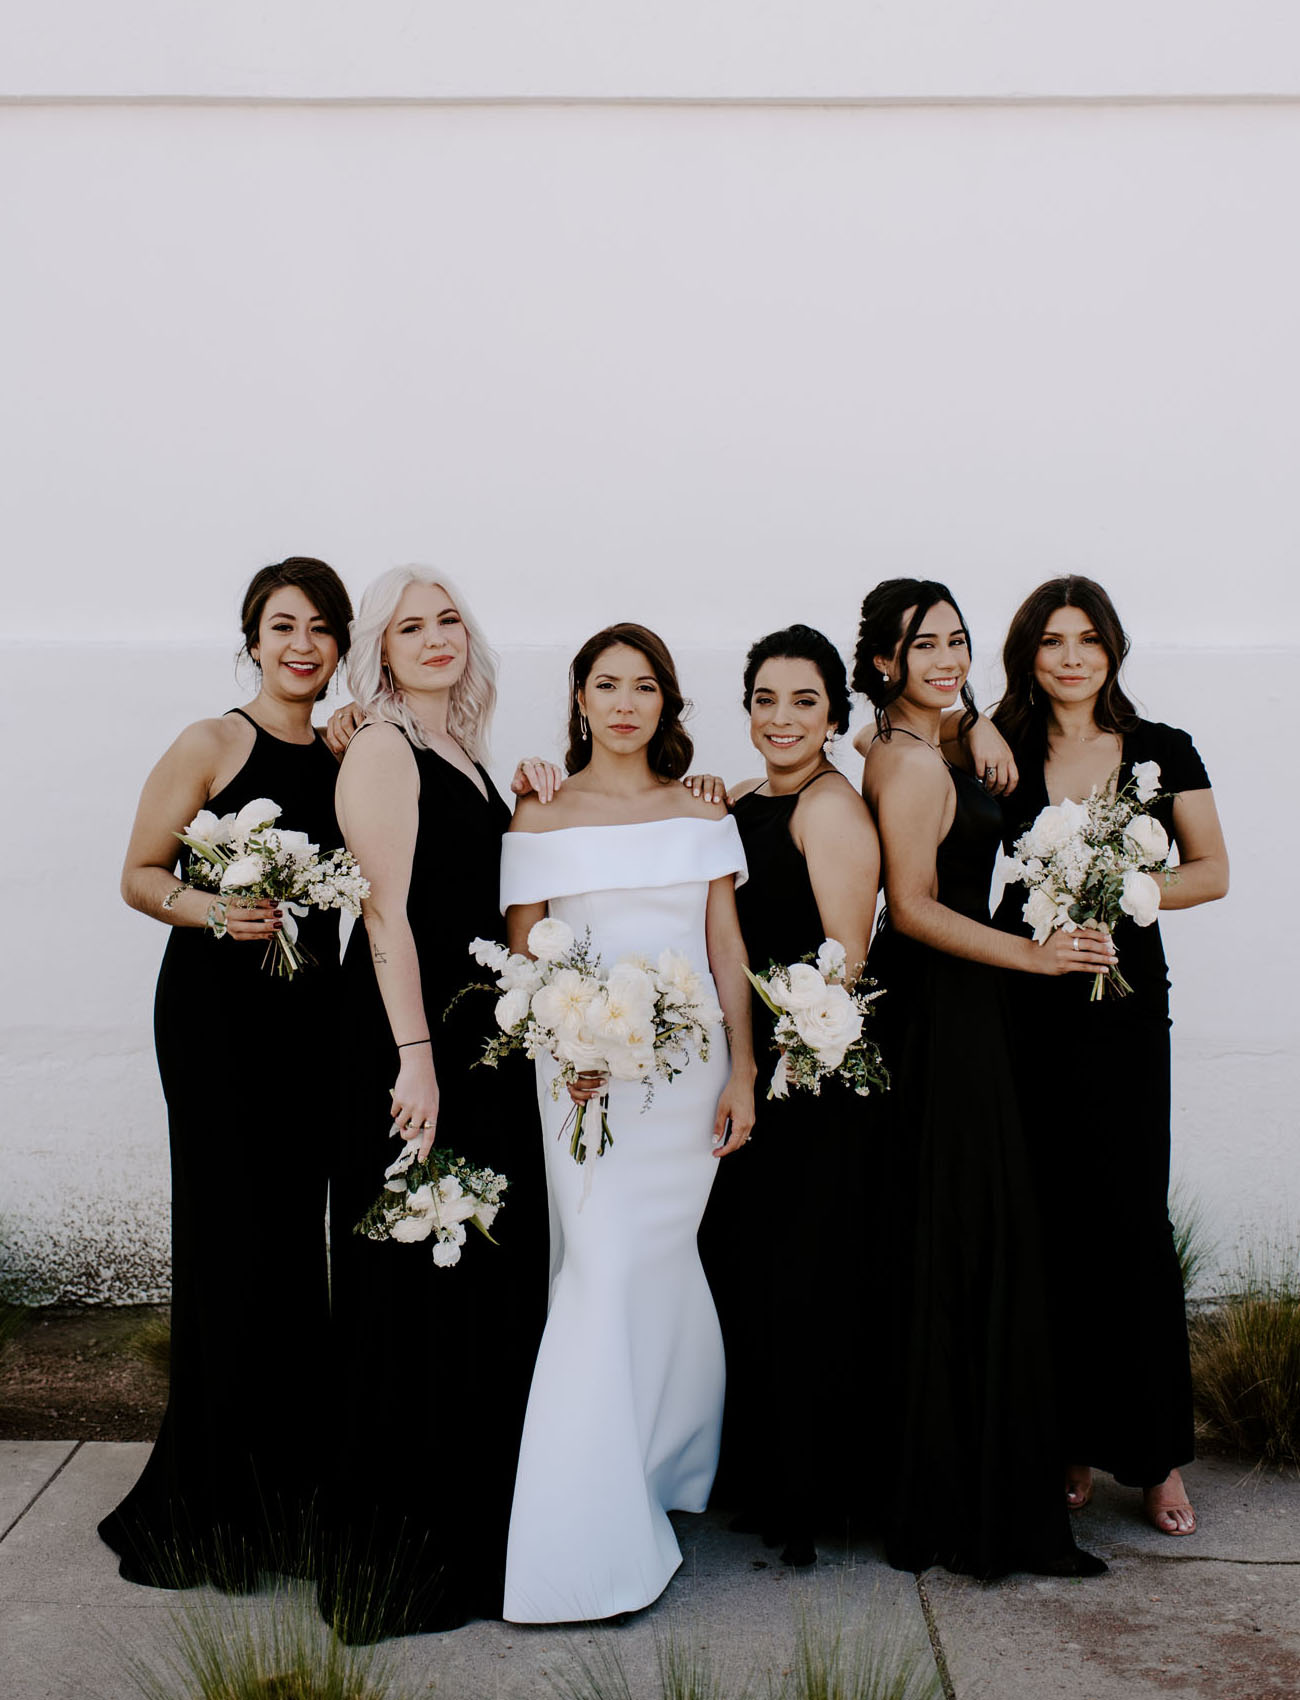 The bride was wearing an off the shoulder sheath wedding dress, the bridesmaids were rocking mismatching black gowns